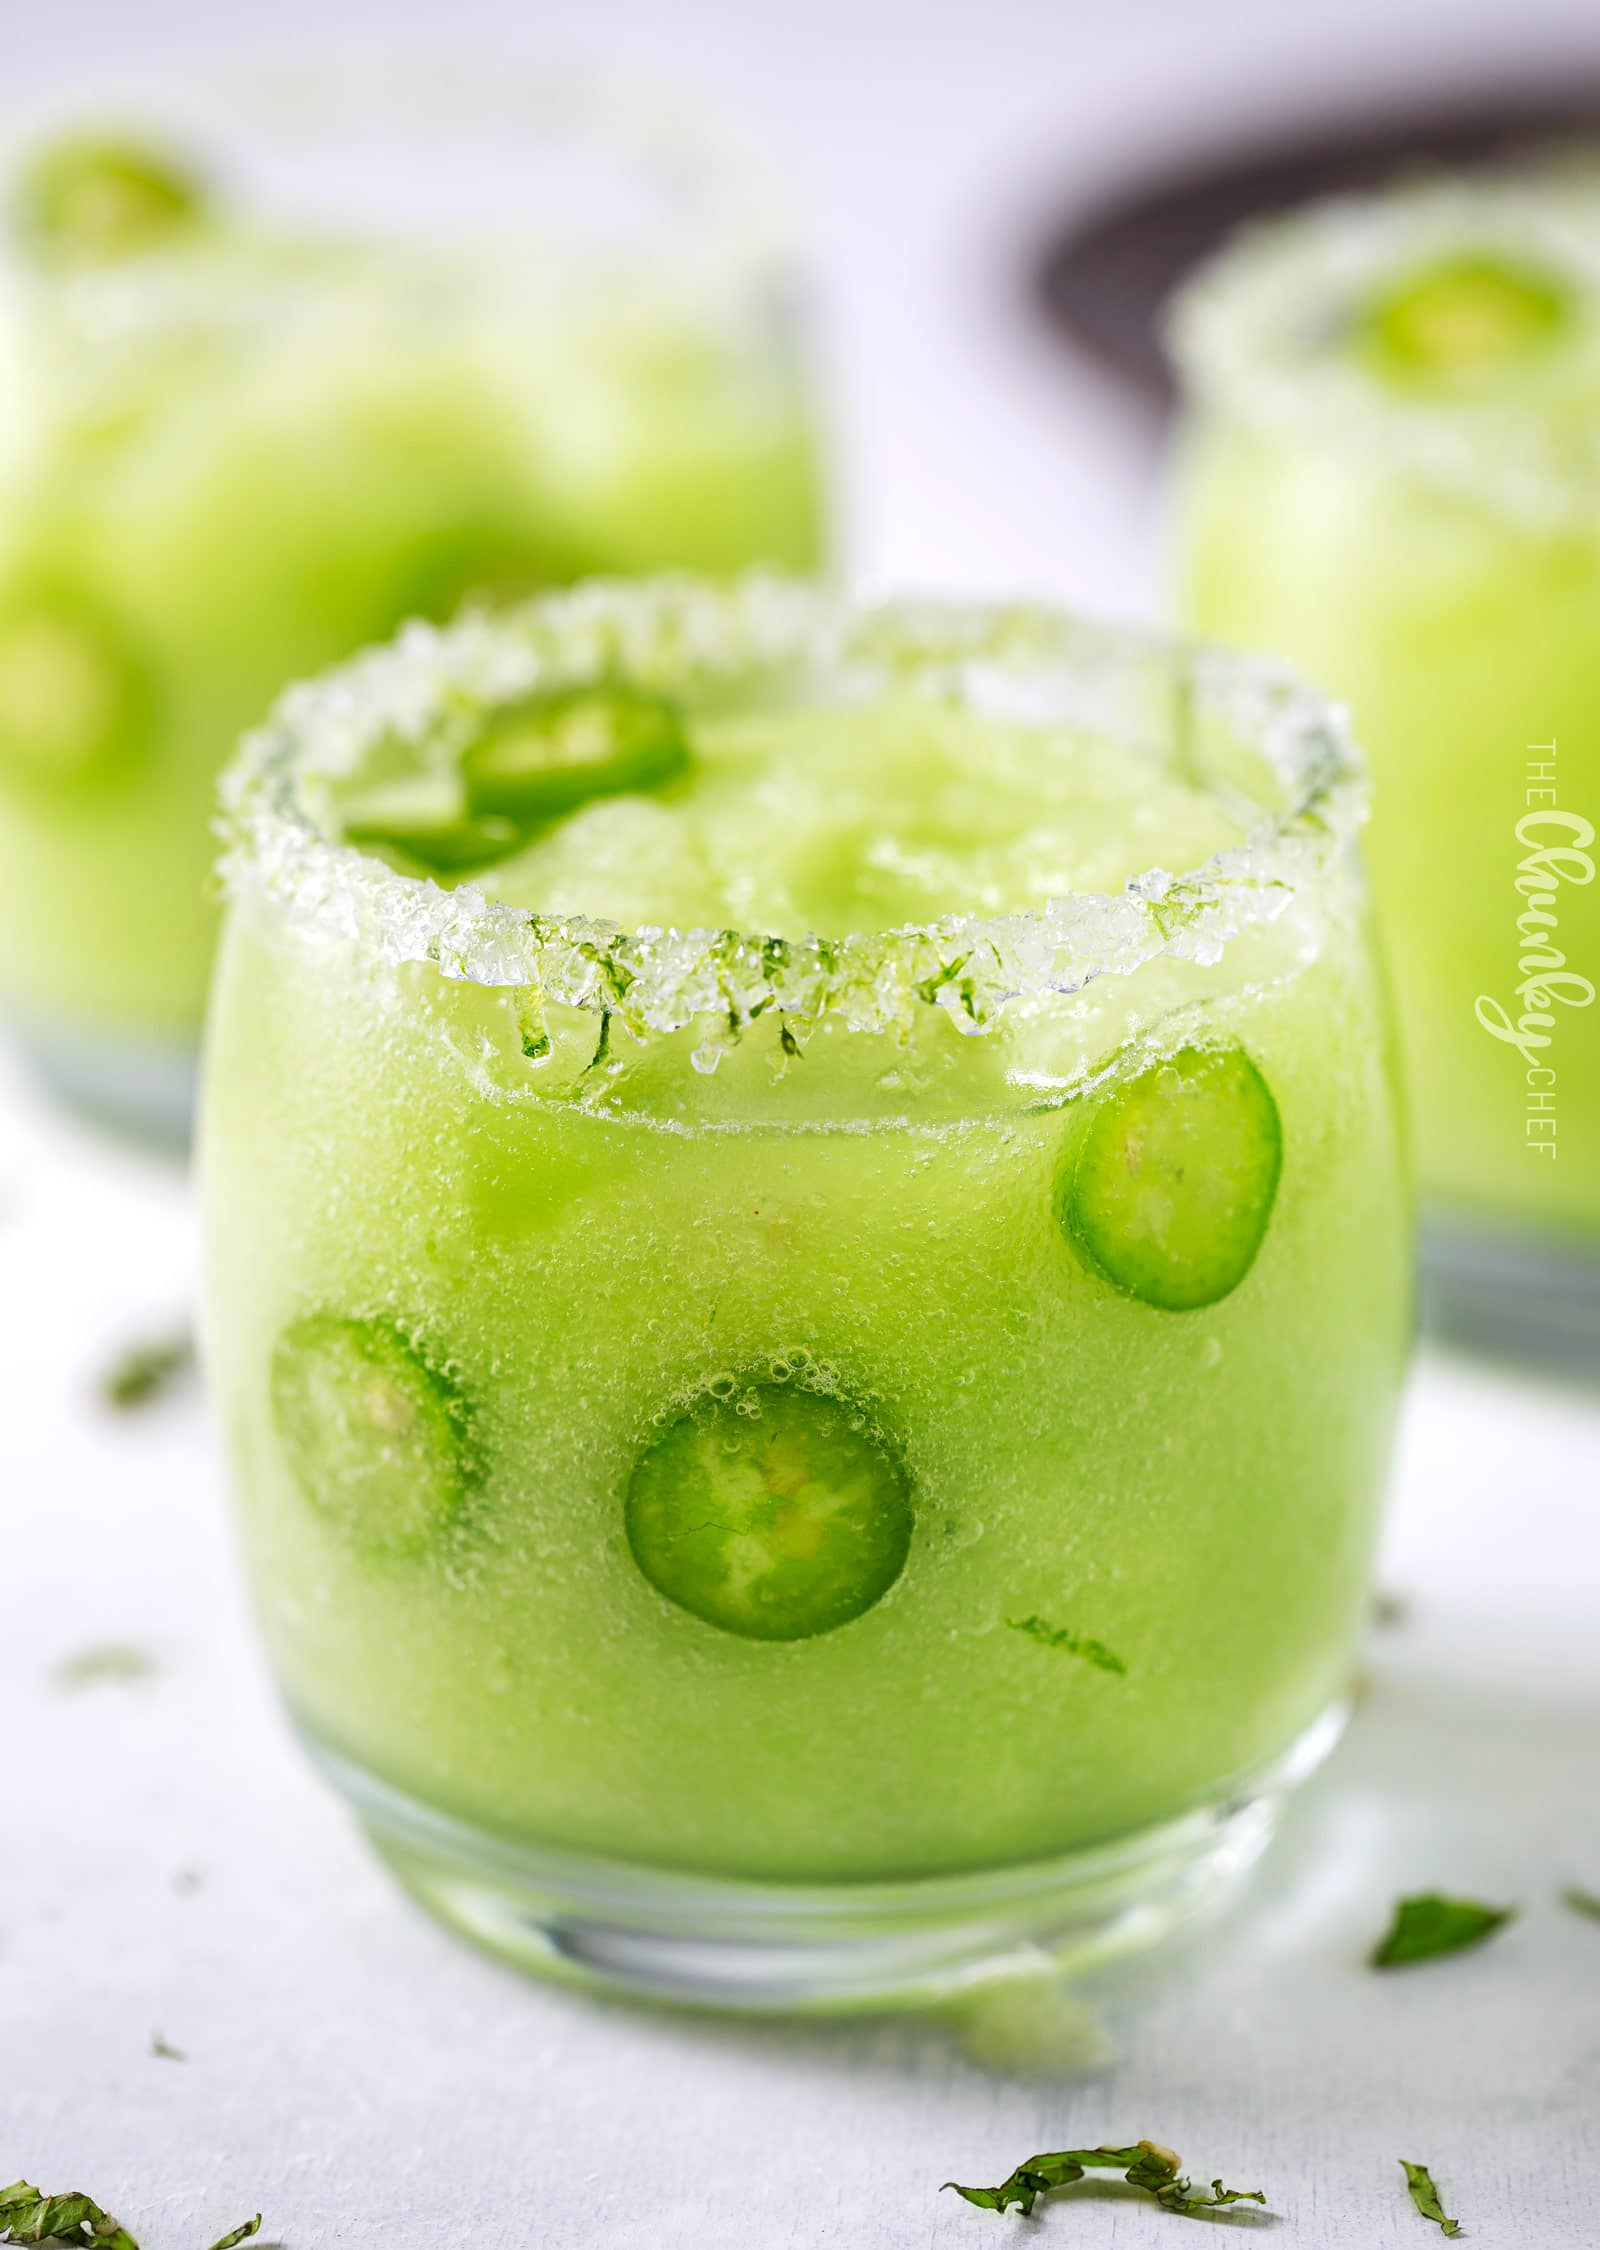 Frozen Honeydew Jalapeno Margarita   Jalapeno infused tequila is blended with fresh honeydew melon and ice to make a beautiful and refreshing summer margarita cocktail!   http://thechunkychef.com